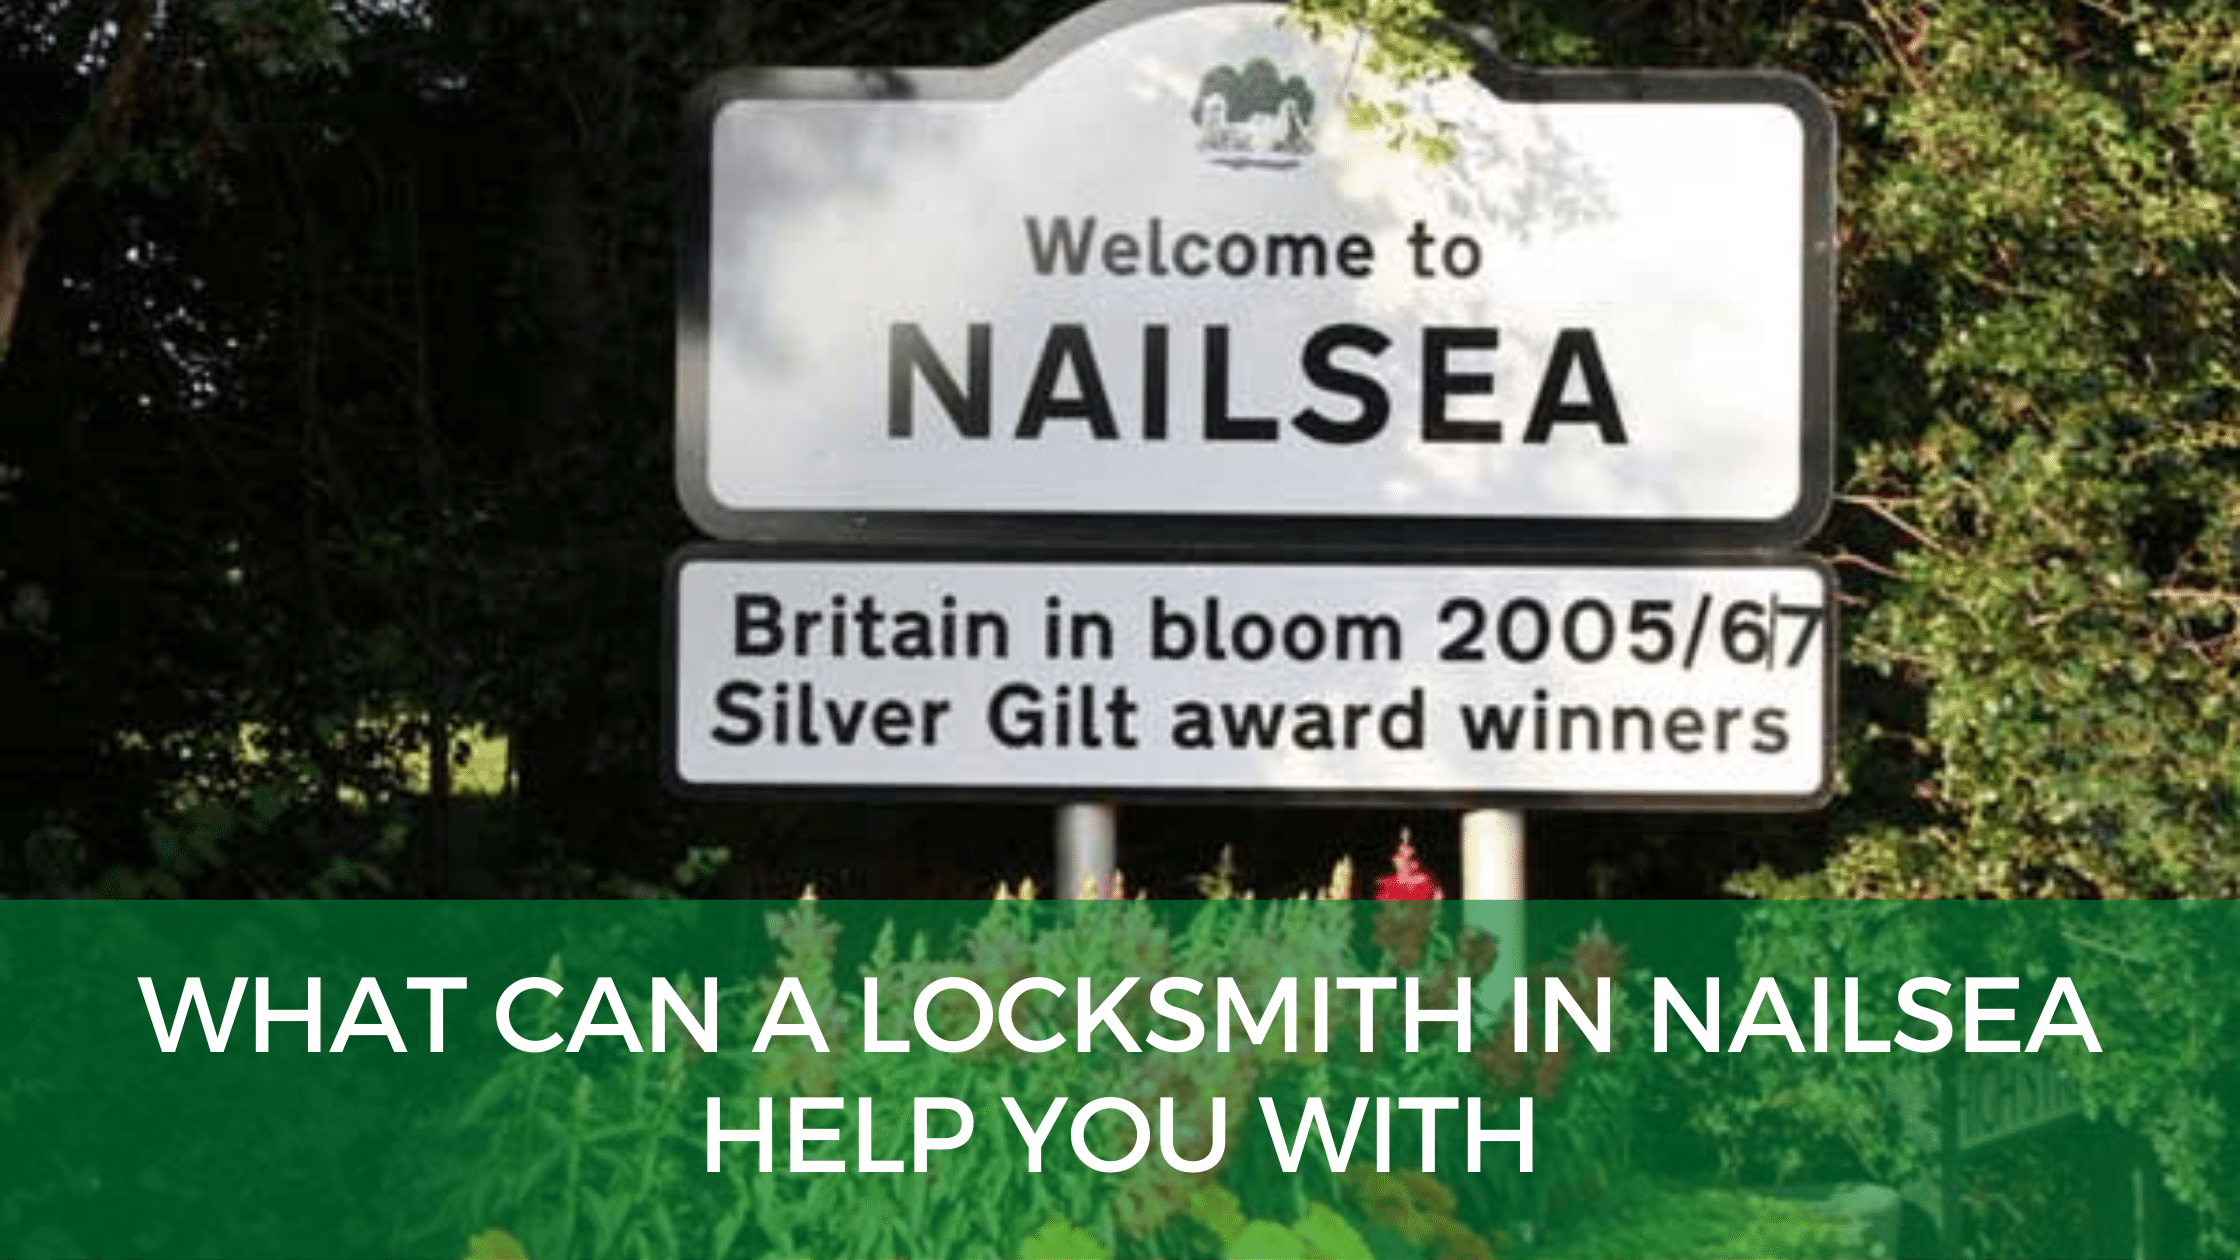 What Can A Locksmith in Nailsea Help You With